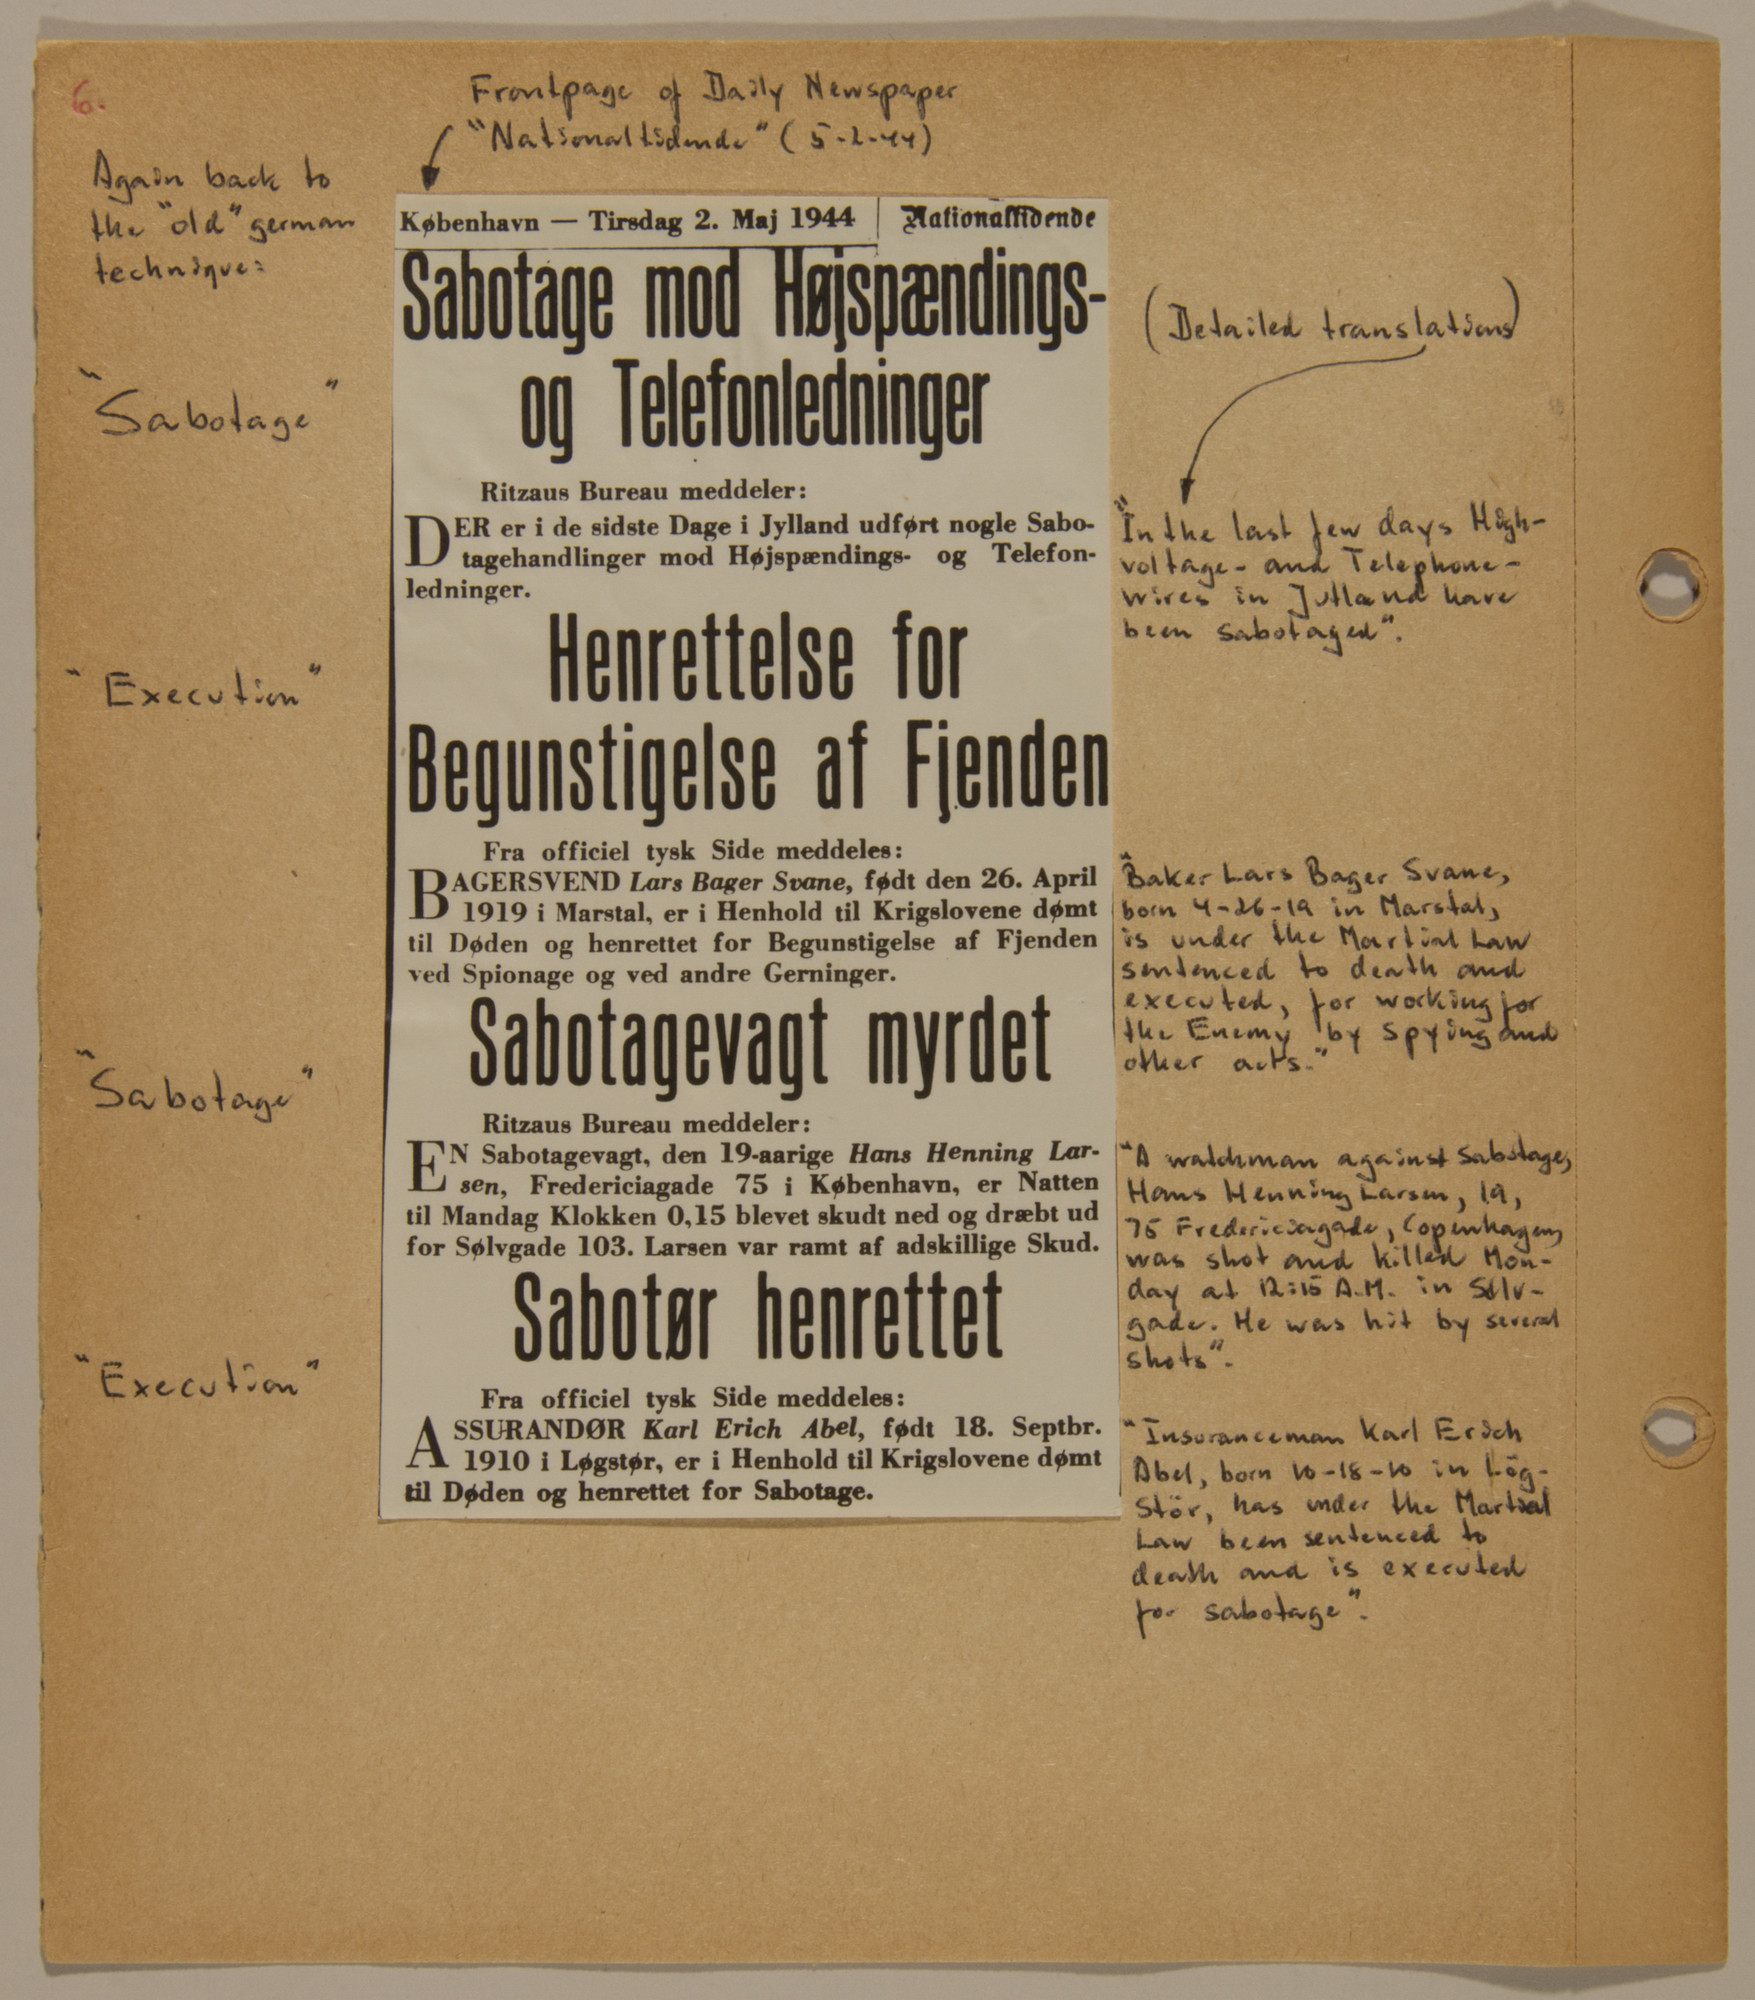 Page from volume five of a set of scrapbooks compiled by Bjorn Sibbern, a Danish policeman and resistance member, documenting the German occupation of Denmark.  This page contains a May 2, 1944 newspaper clipping about sabotage.